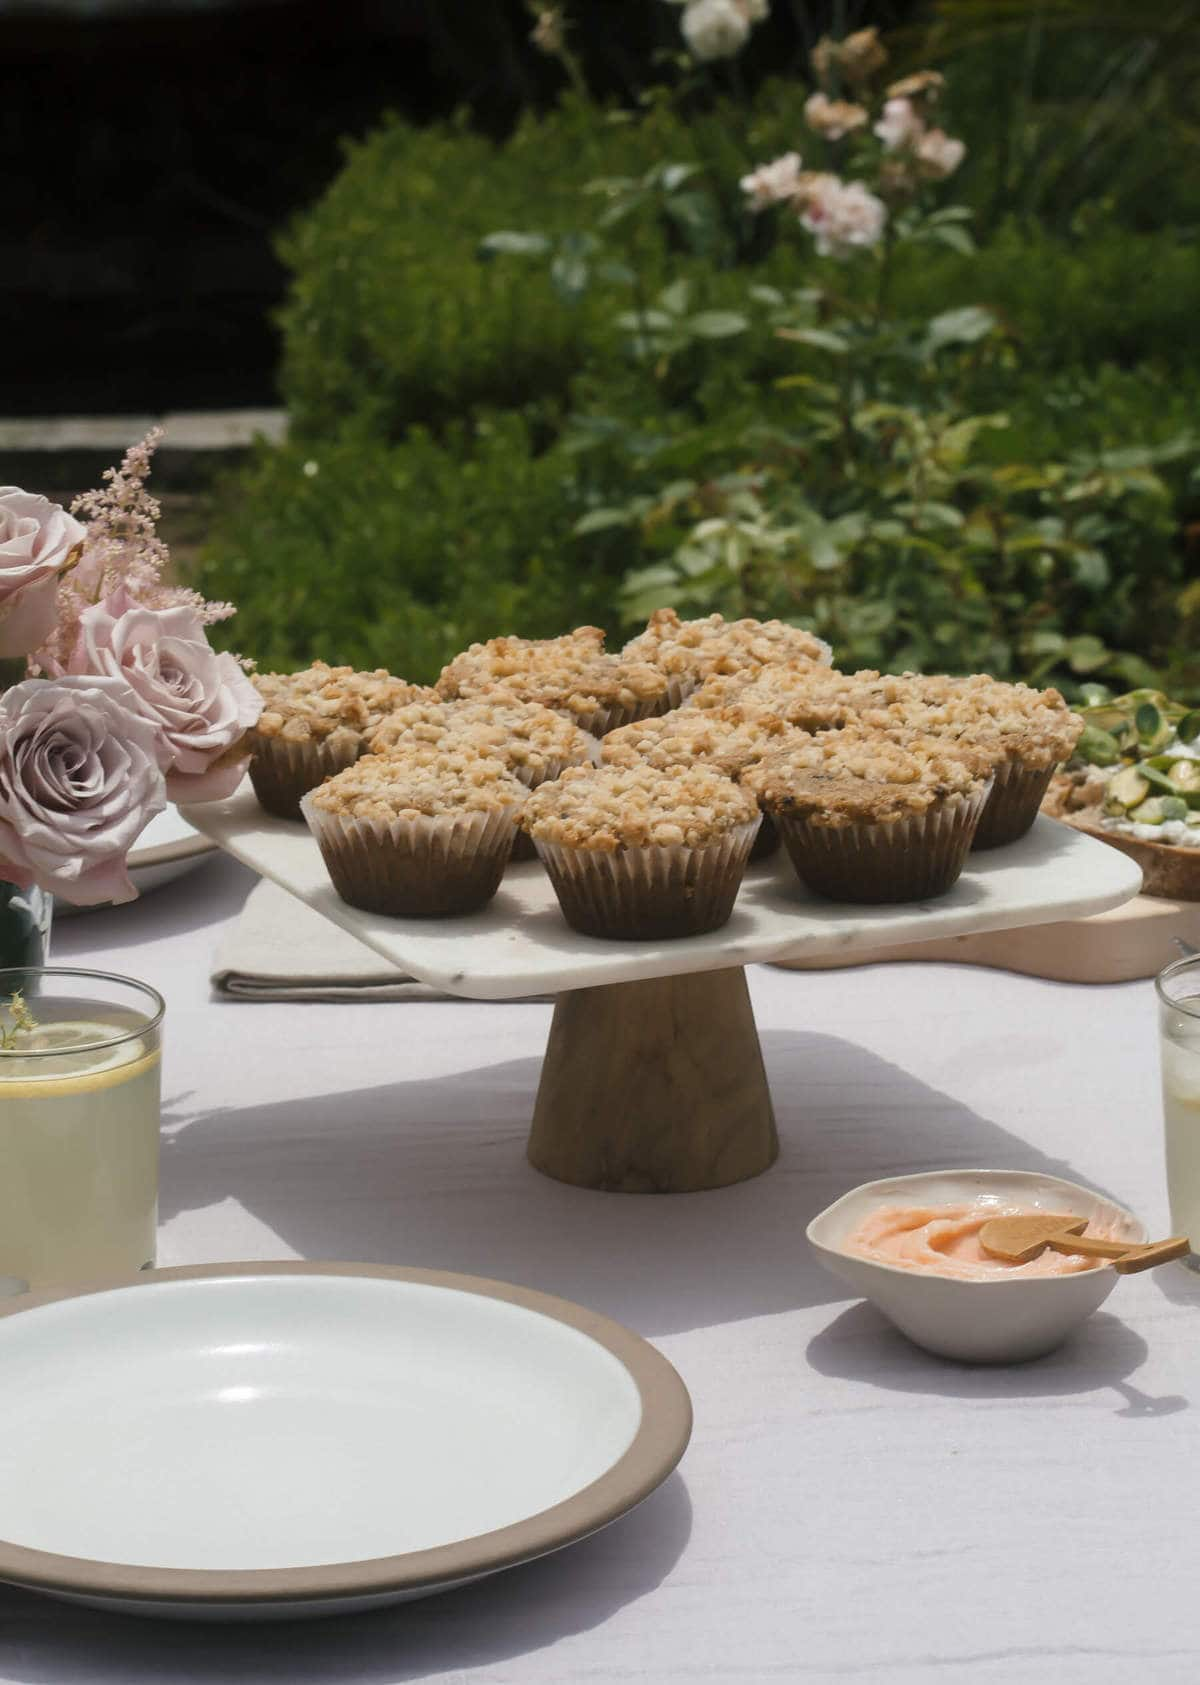 Rye Chocolate Streusel Muffins with Strawberry Pink Peppercorn Butter